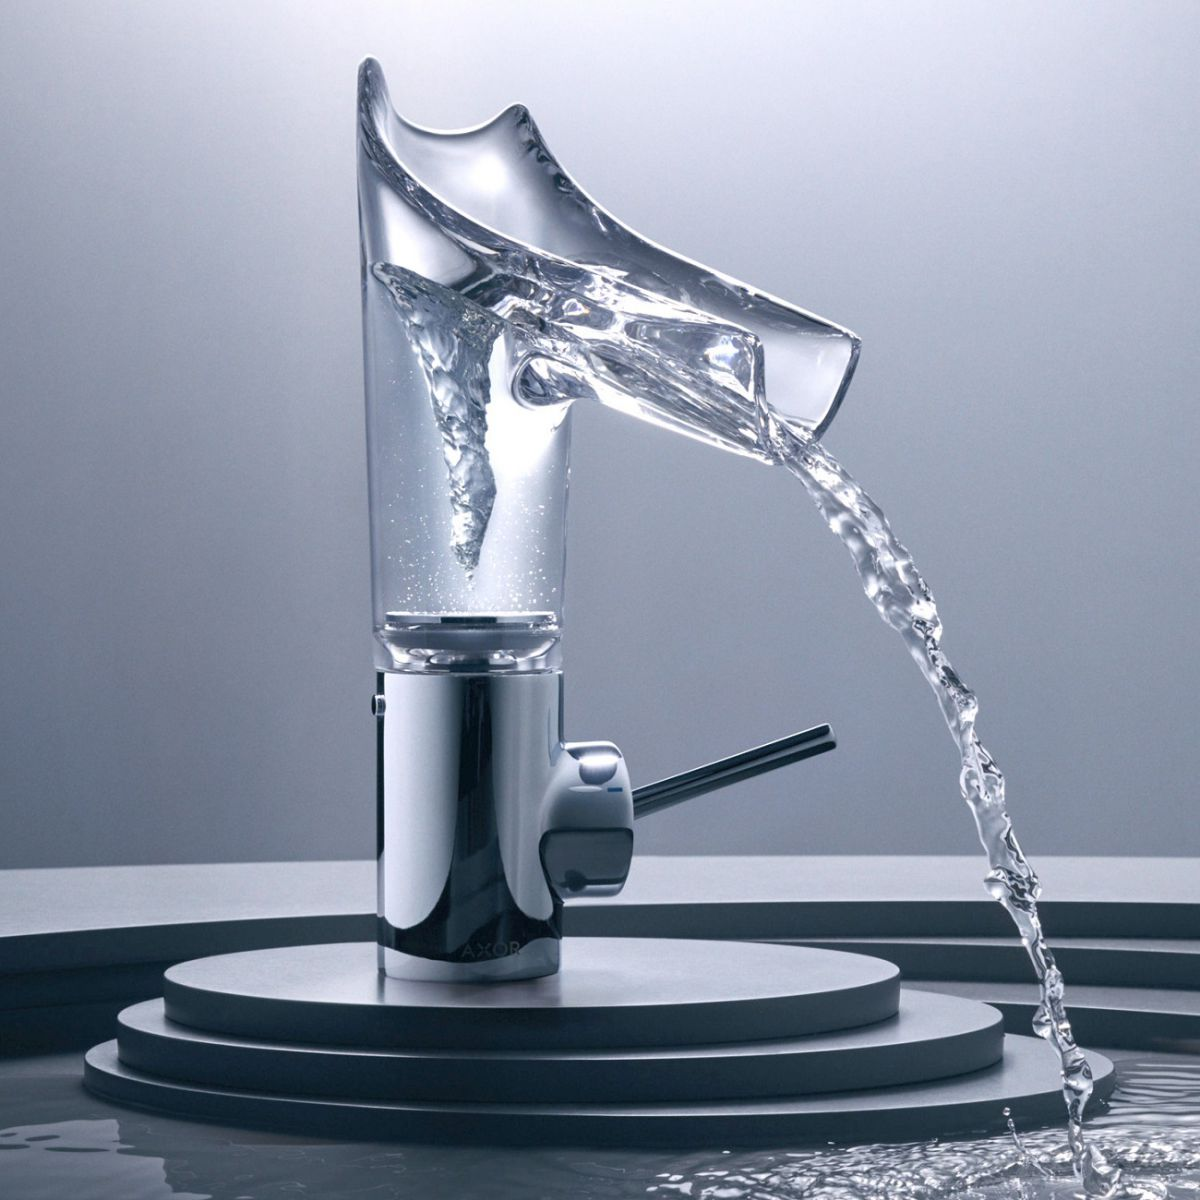 Axor Starck V Washbasin Mixer Axor Starck V 140 Basin Mixer With Glass Spout